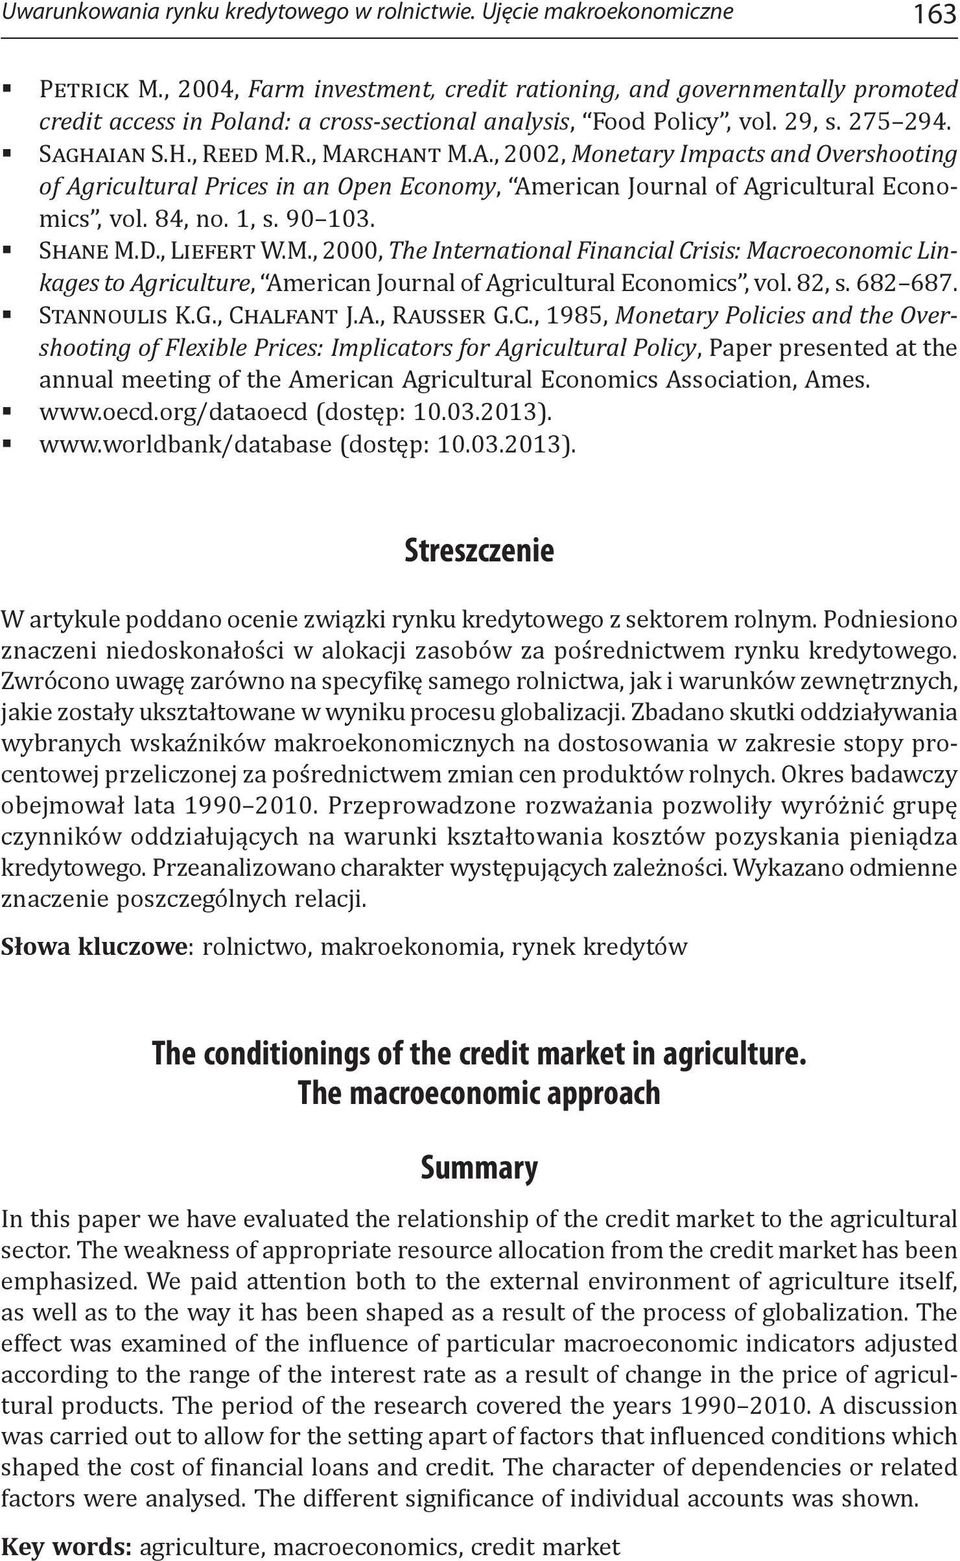 , 2002, Monetary Impacts and Overshooting of Agricultural Prices in an Open Economy, American Journal of Agricultural Economics, vol. 84, no. 1, s. 90 103. Shane M.D., Liefert W.M., 2000, The International Financial Crisis: Macroeconomic Linkages to Agriculture, American Journal of Agricultural Economics, vol.